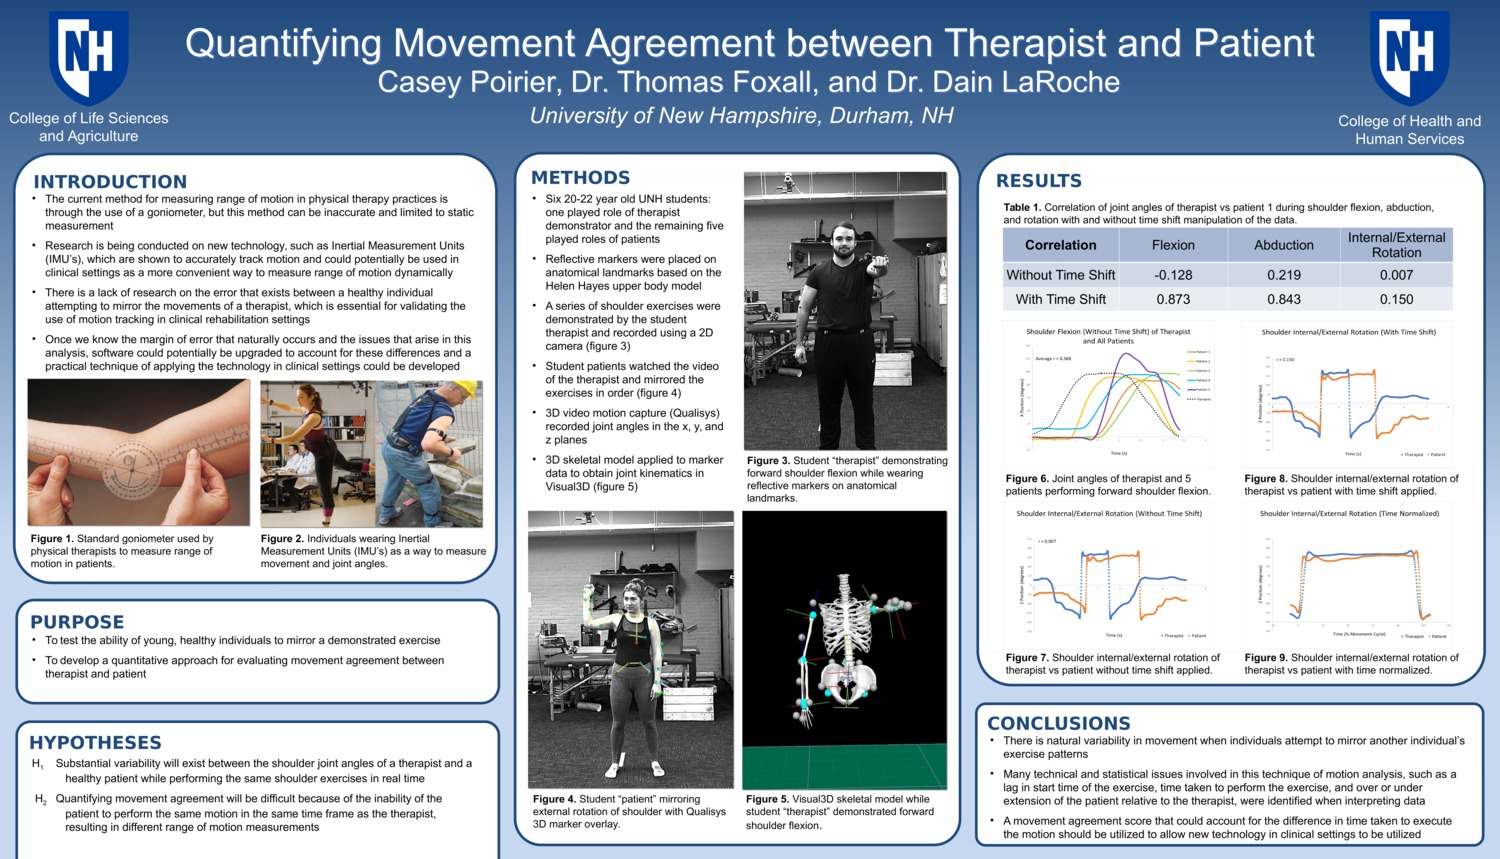 Quantifying Movement Agreement Between Therapist And Patient by clp1006